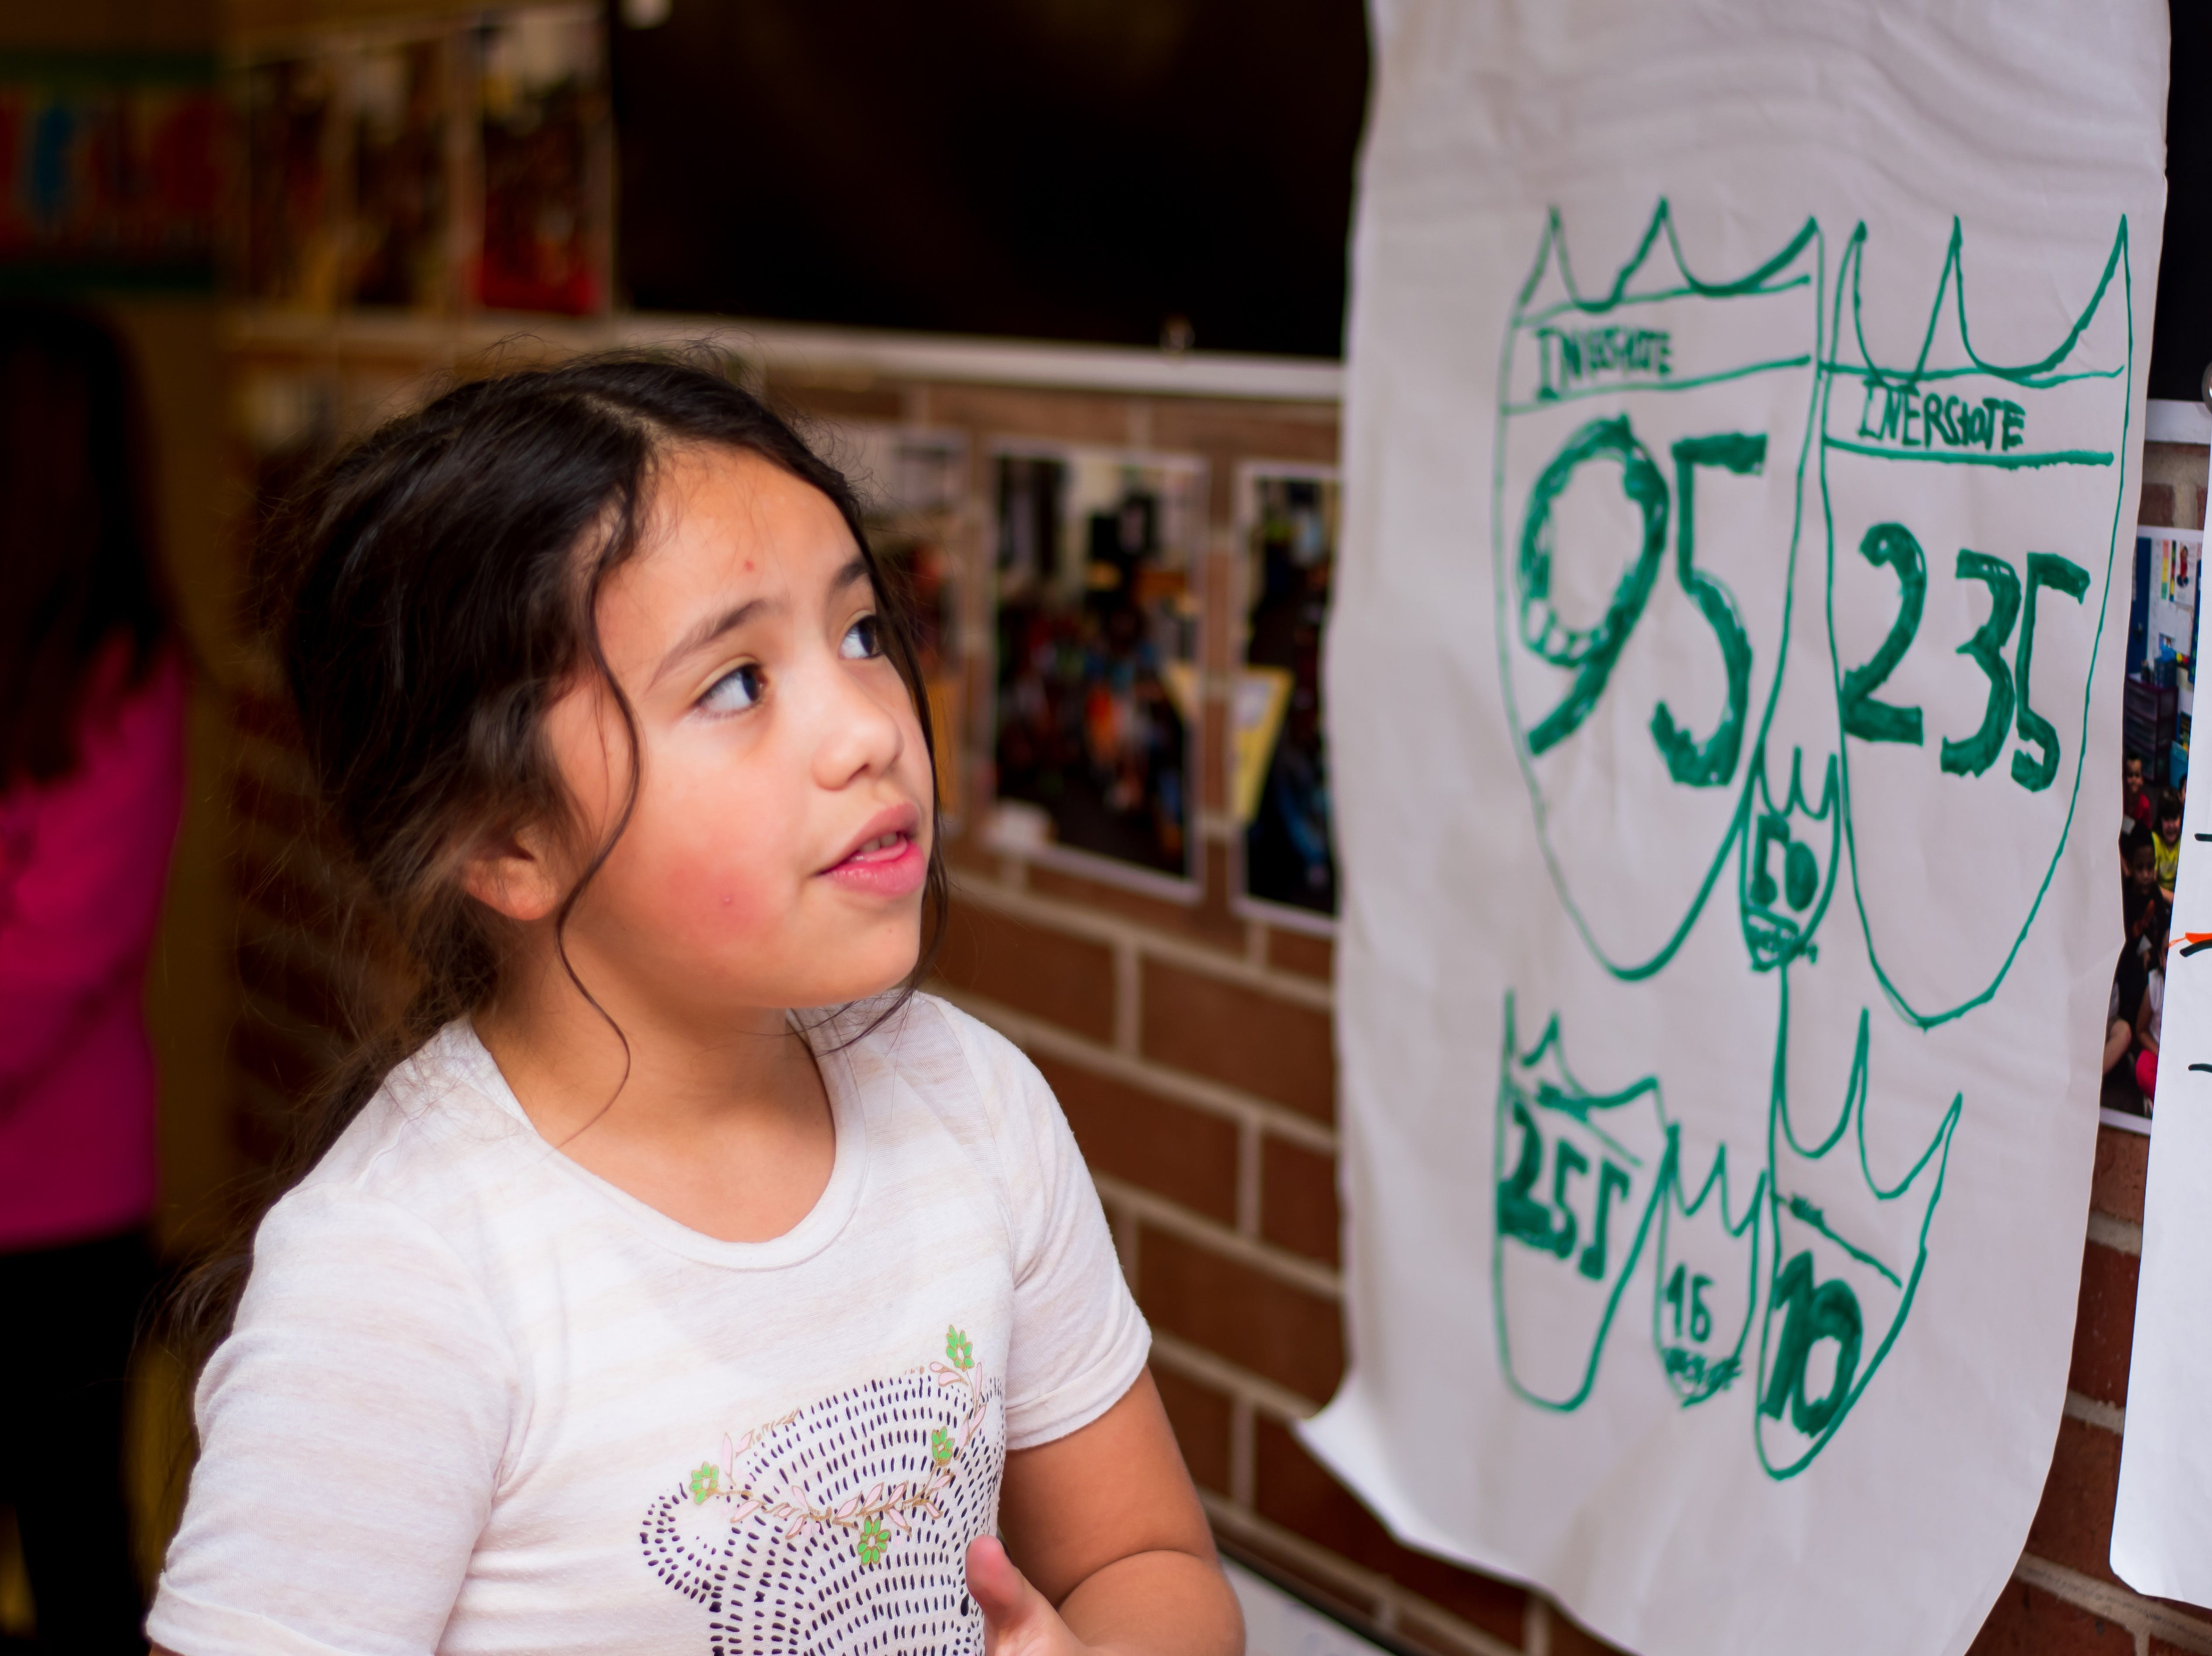 Smiley Rogdegez, 8, of Clive shares her work at the Celebrate Crestview event on Tuesday, Dec. 11, 2018 at Crestview School of Inquiry in Clive. Students learned the history of immigration in Clive and the impact it has had on Crestview.